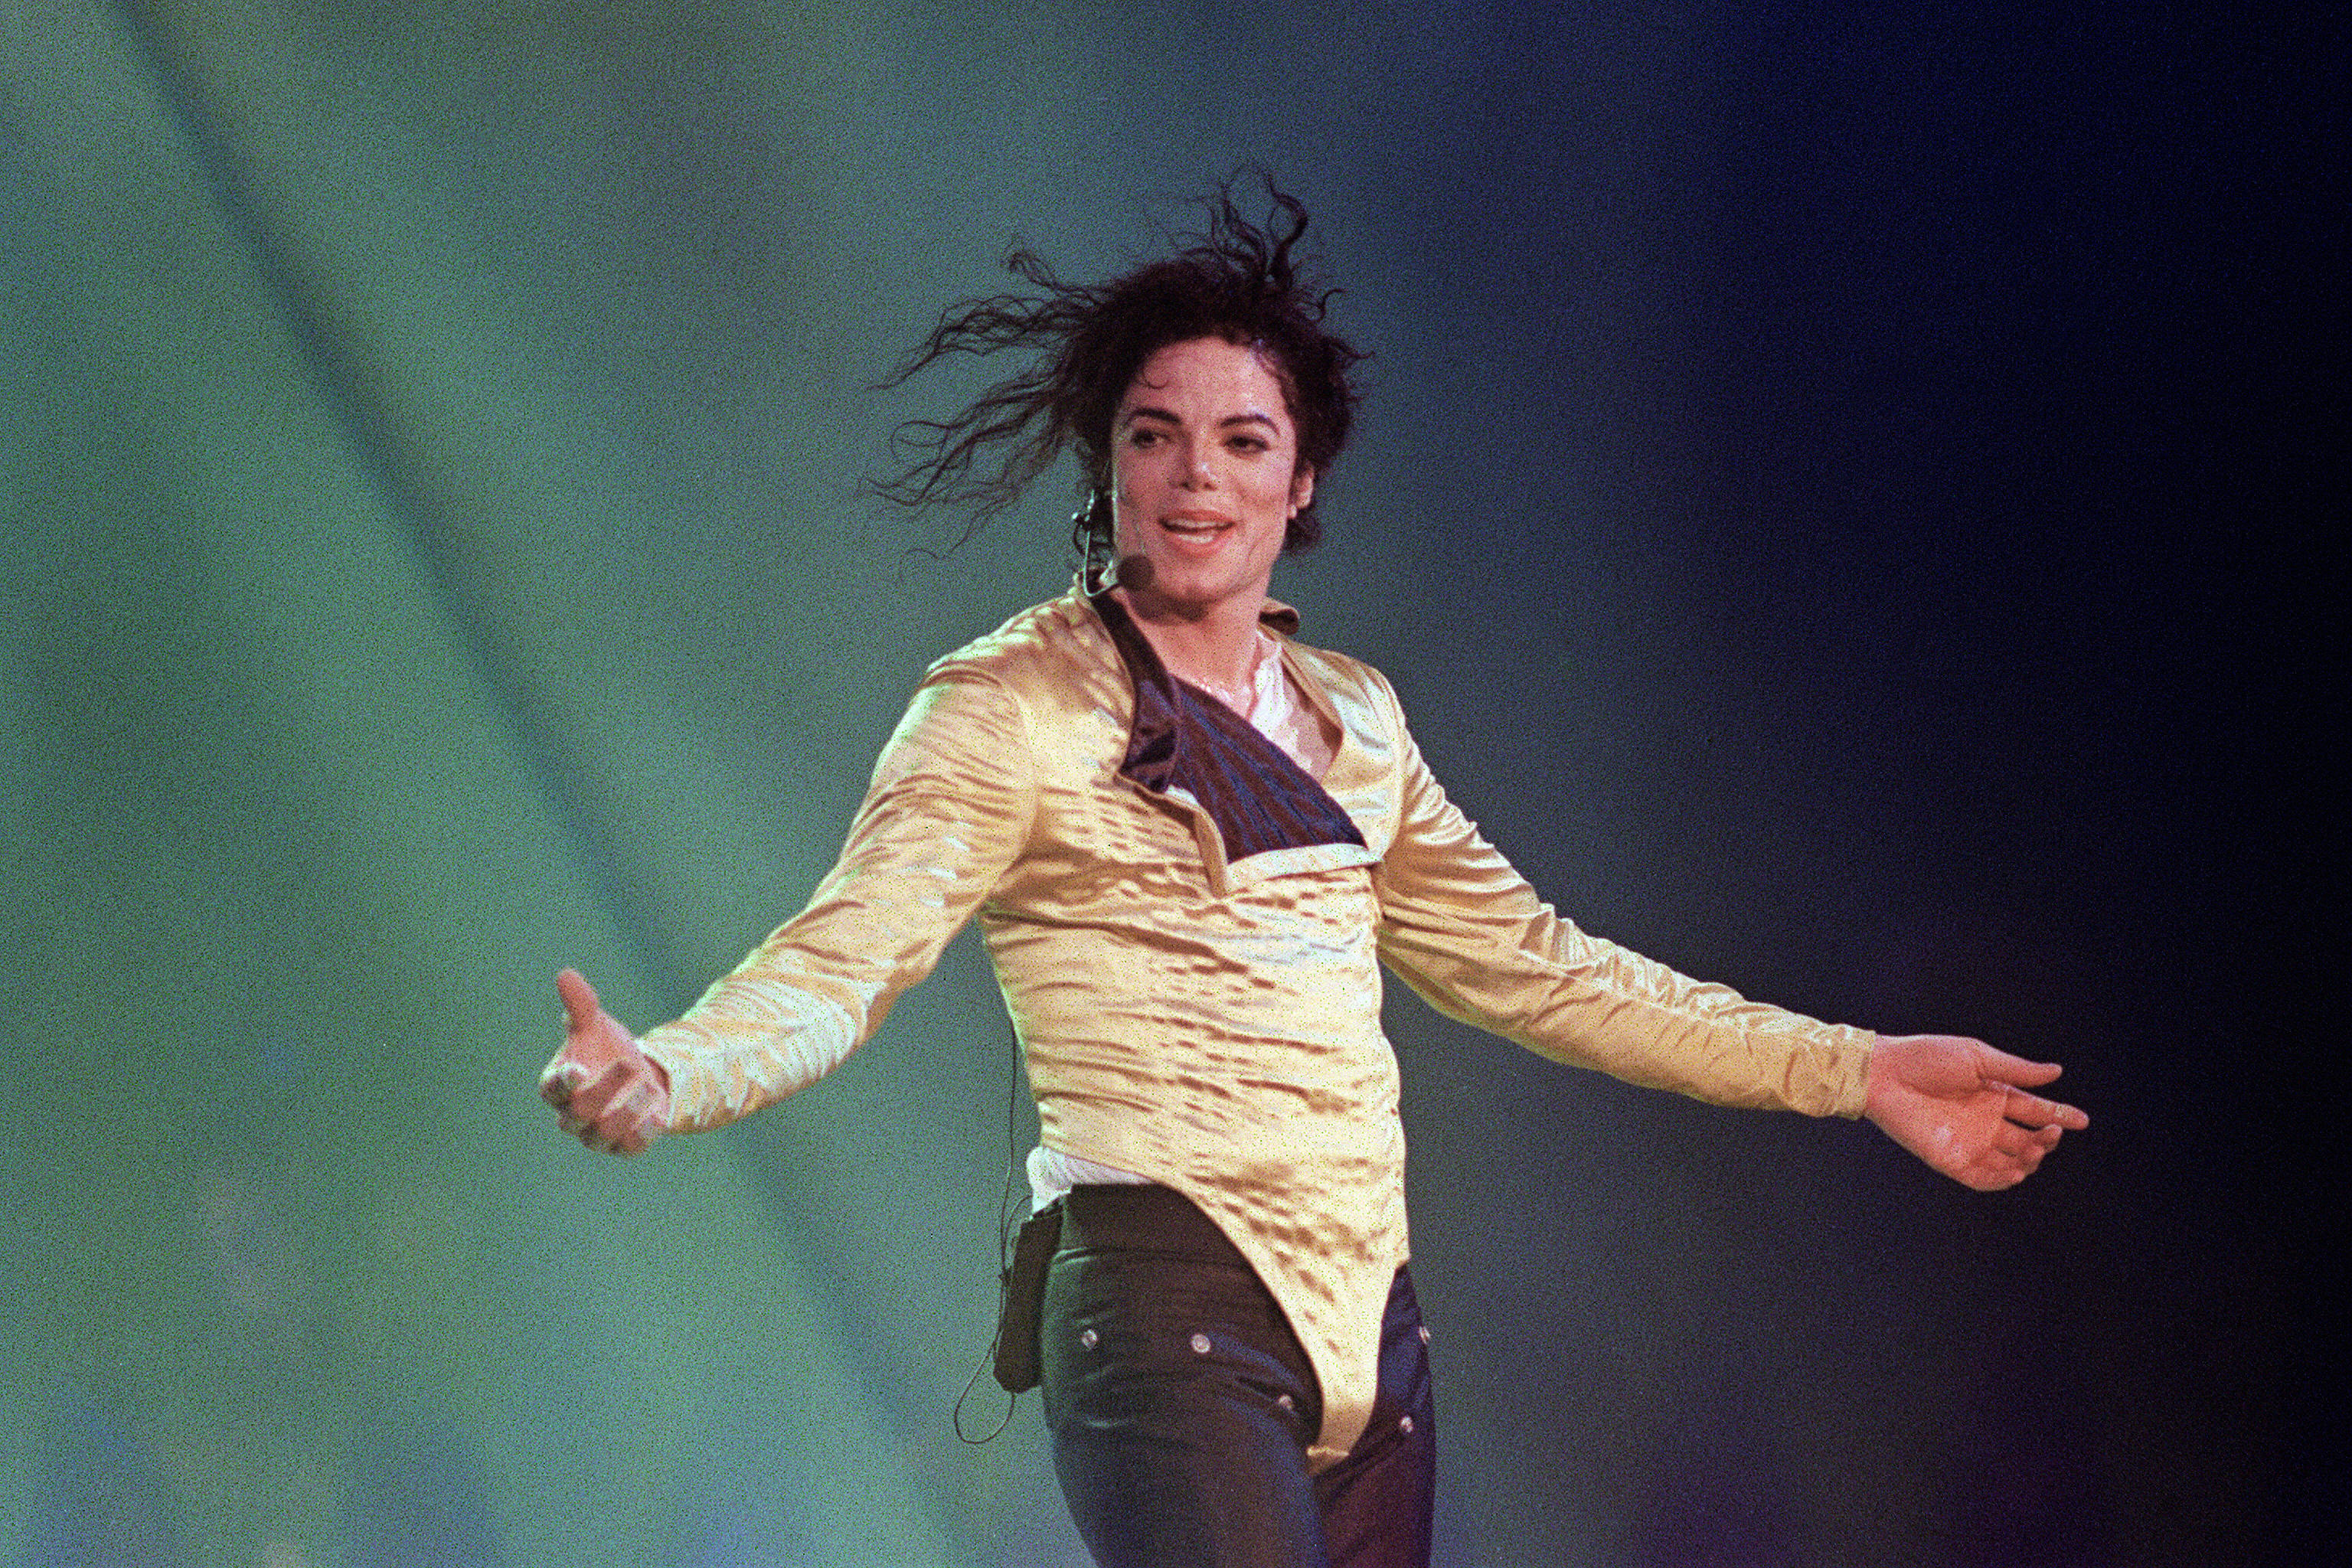 BBC announce documentary to 'help understand' Michael Jackson as Leaving Neverland details allegations of singer's sexual abuse